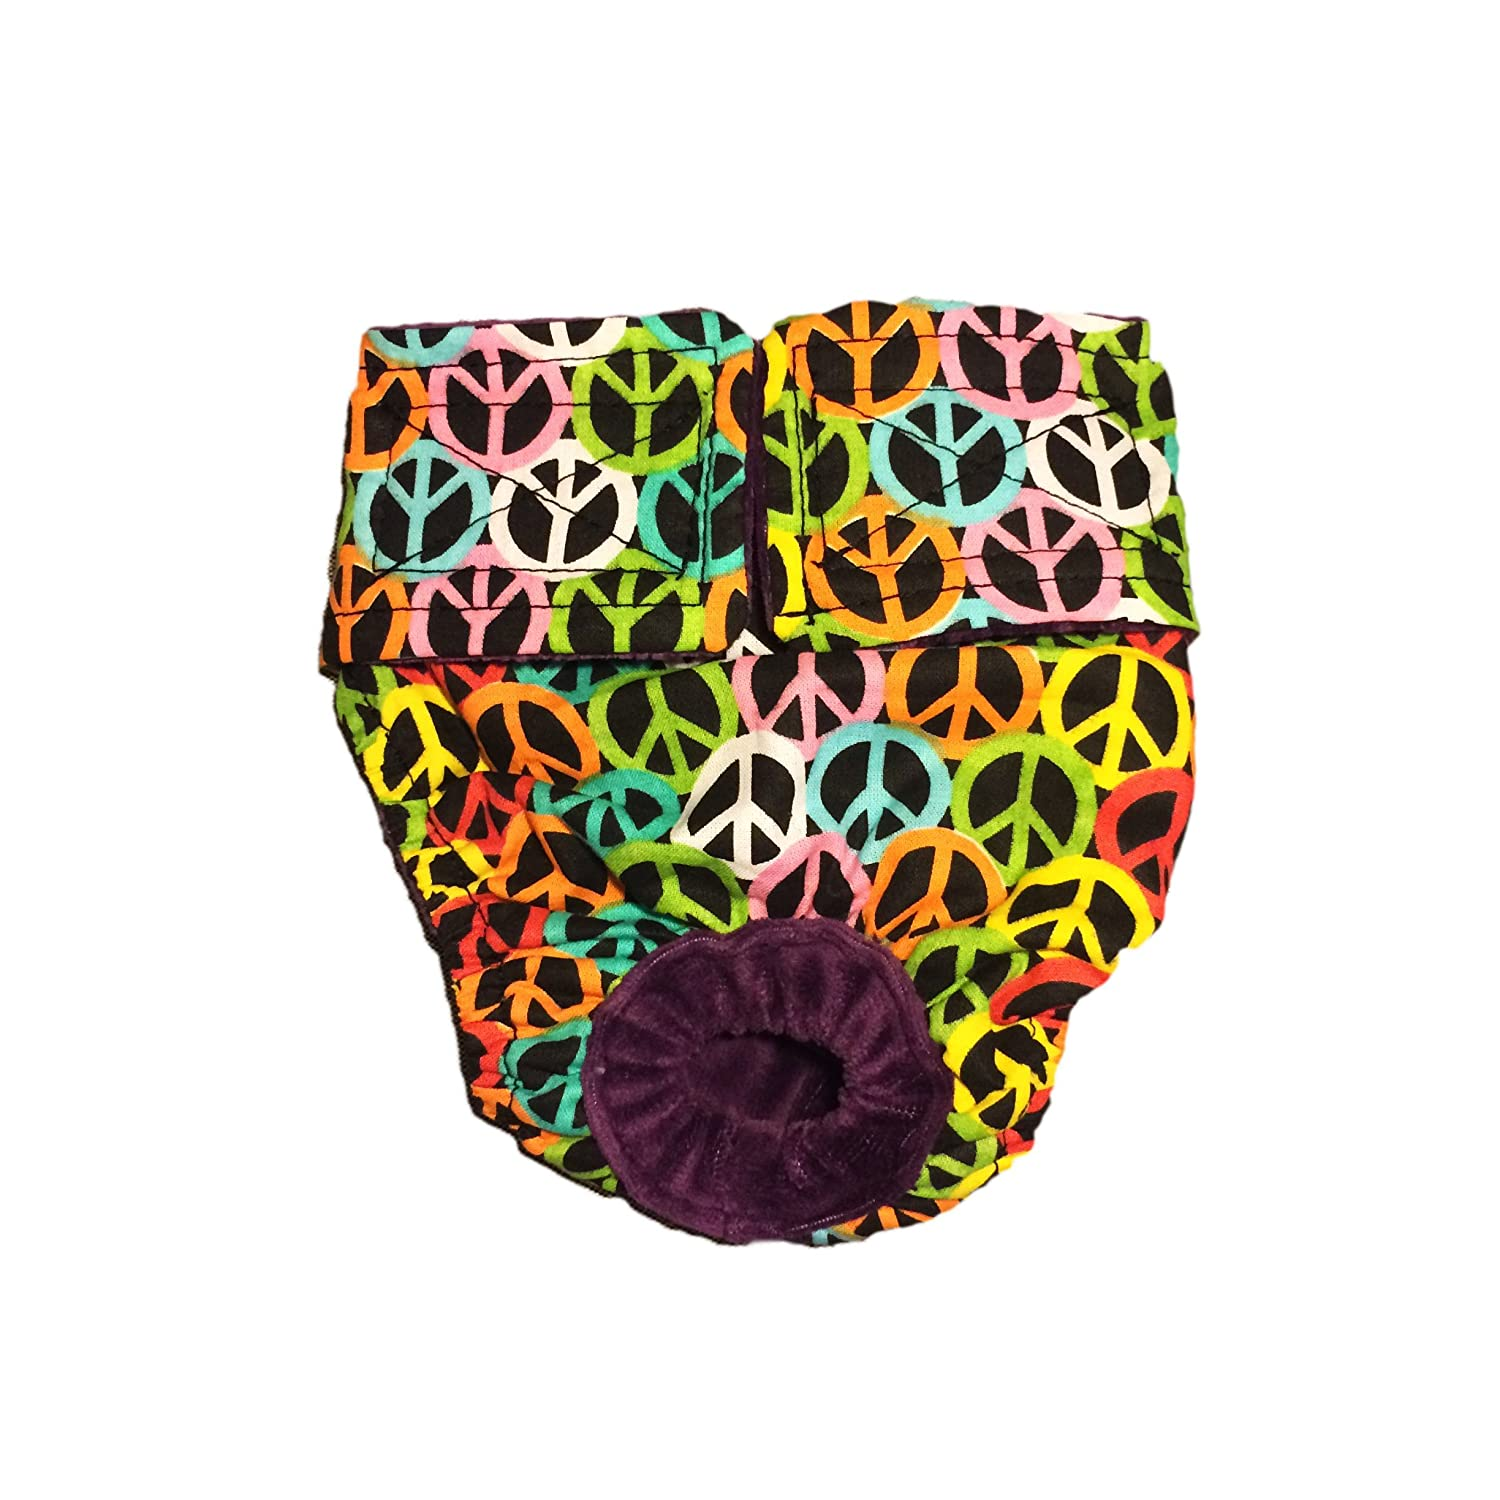 outlet Dog Diapers - Made in USA - Colorful Peace Washable Dog Diaper for Incontinence, Housetraining and Dogs in Heat